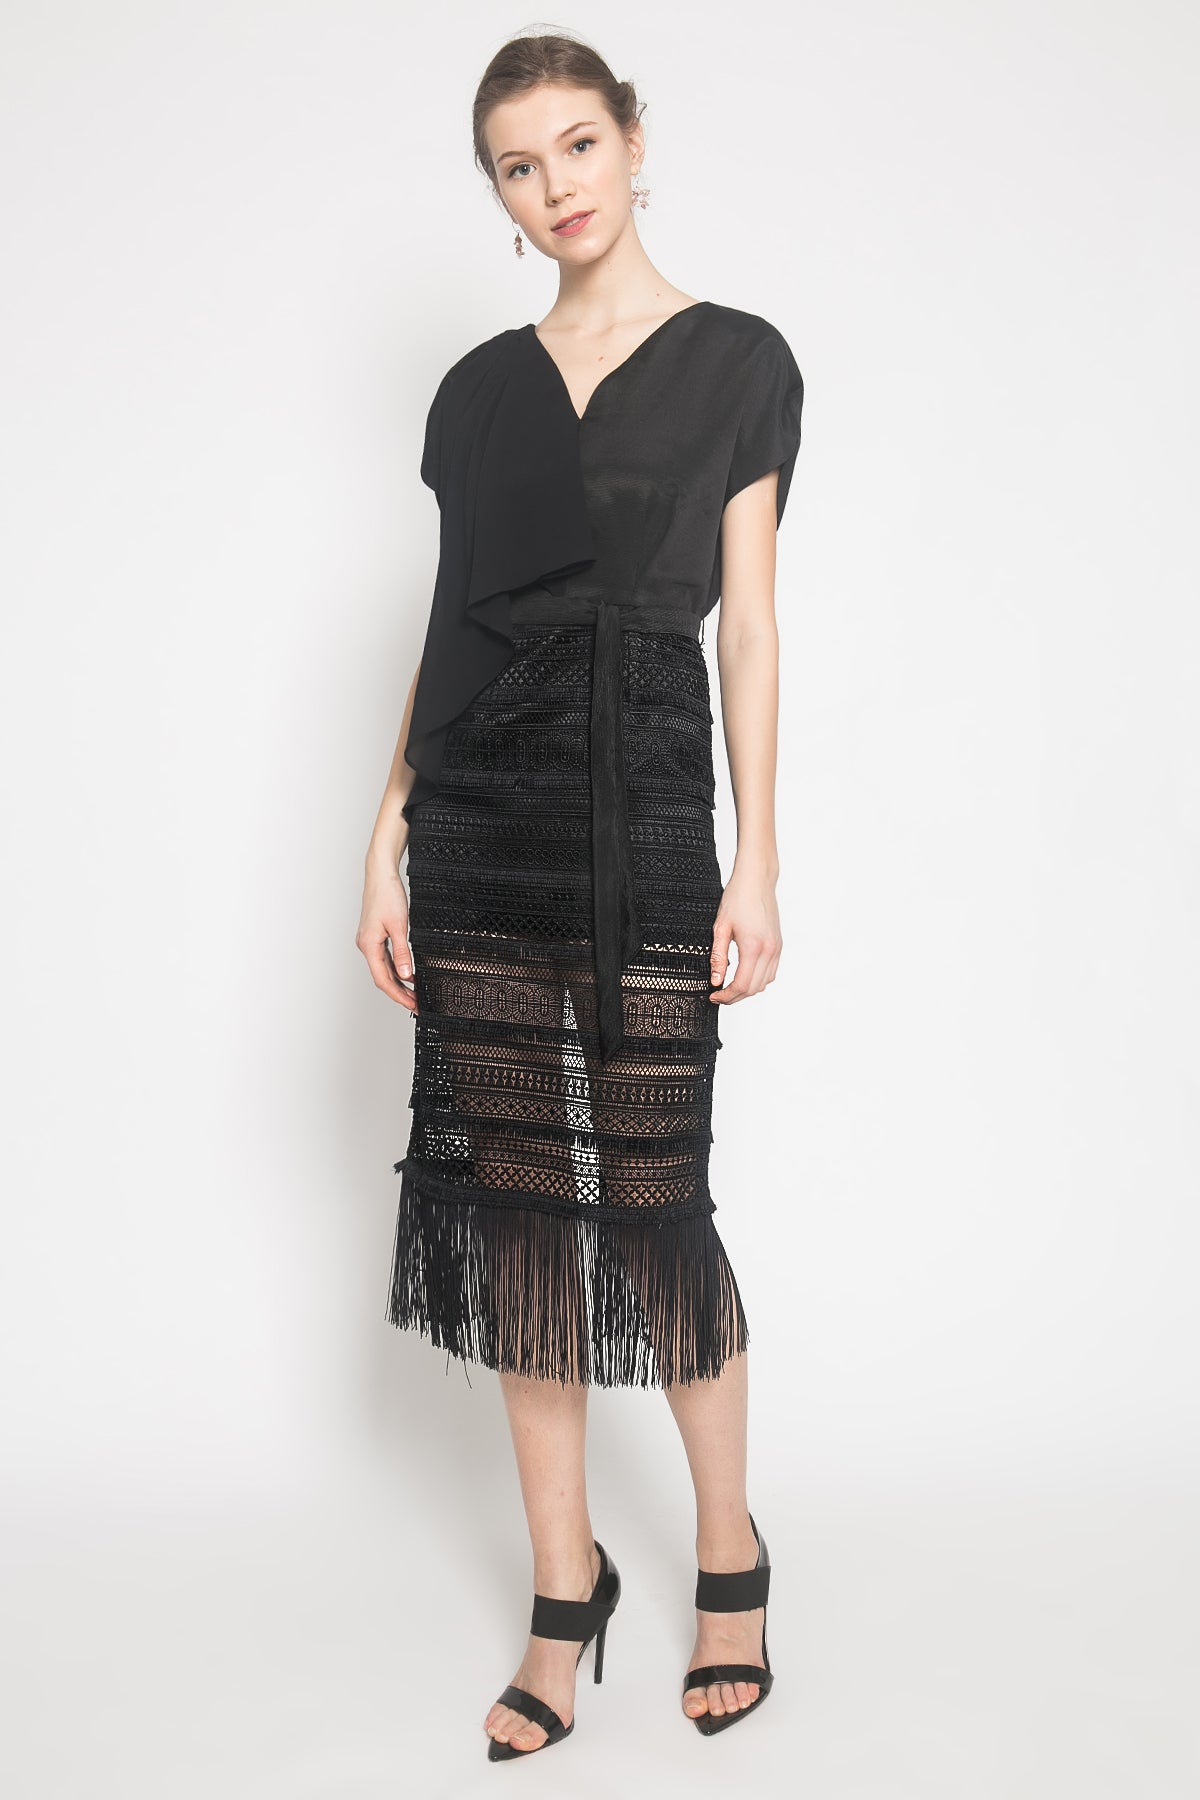 Crochet Fringe Dress in Black